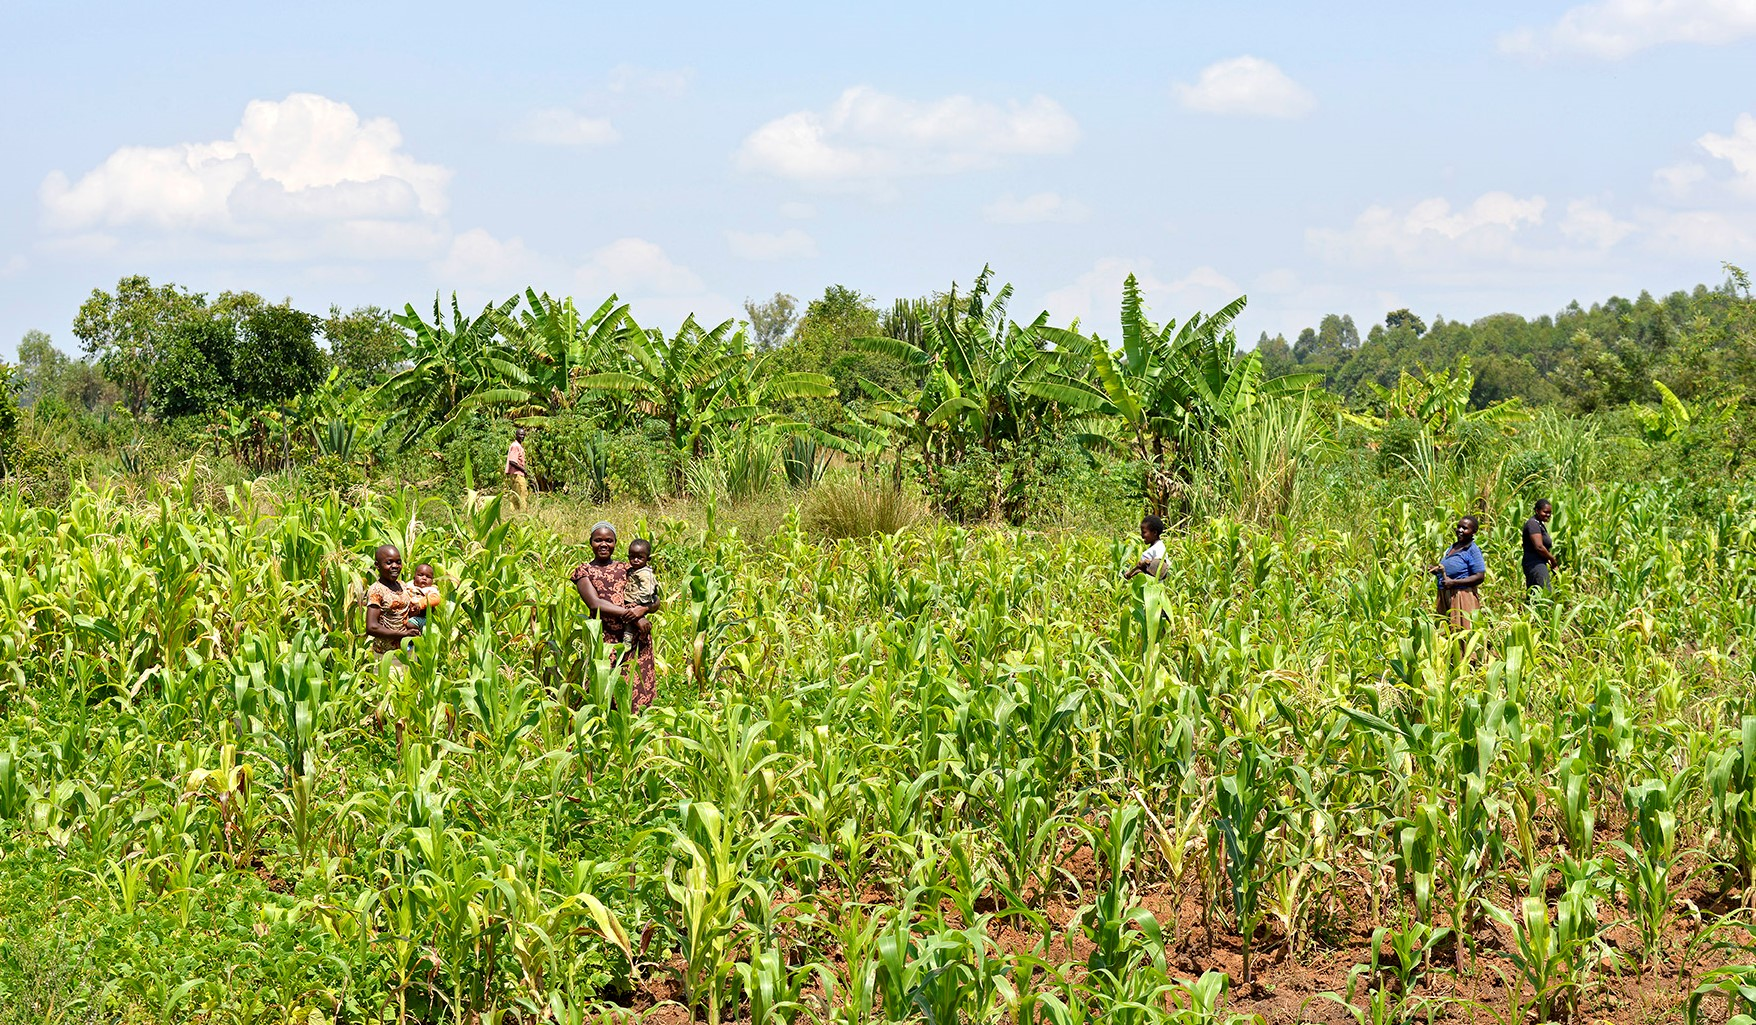 """Interview with Wangu Mutua, Kenya: <br> """"FARMERS INVOLVED IN THE LIVELIHOODS PROJECT CAN NOW ASPIRE TO A BETTER FUTURE"""""""""""